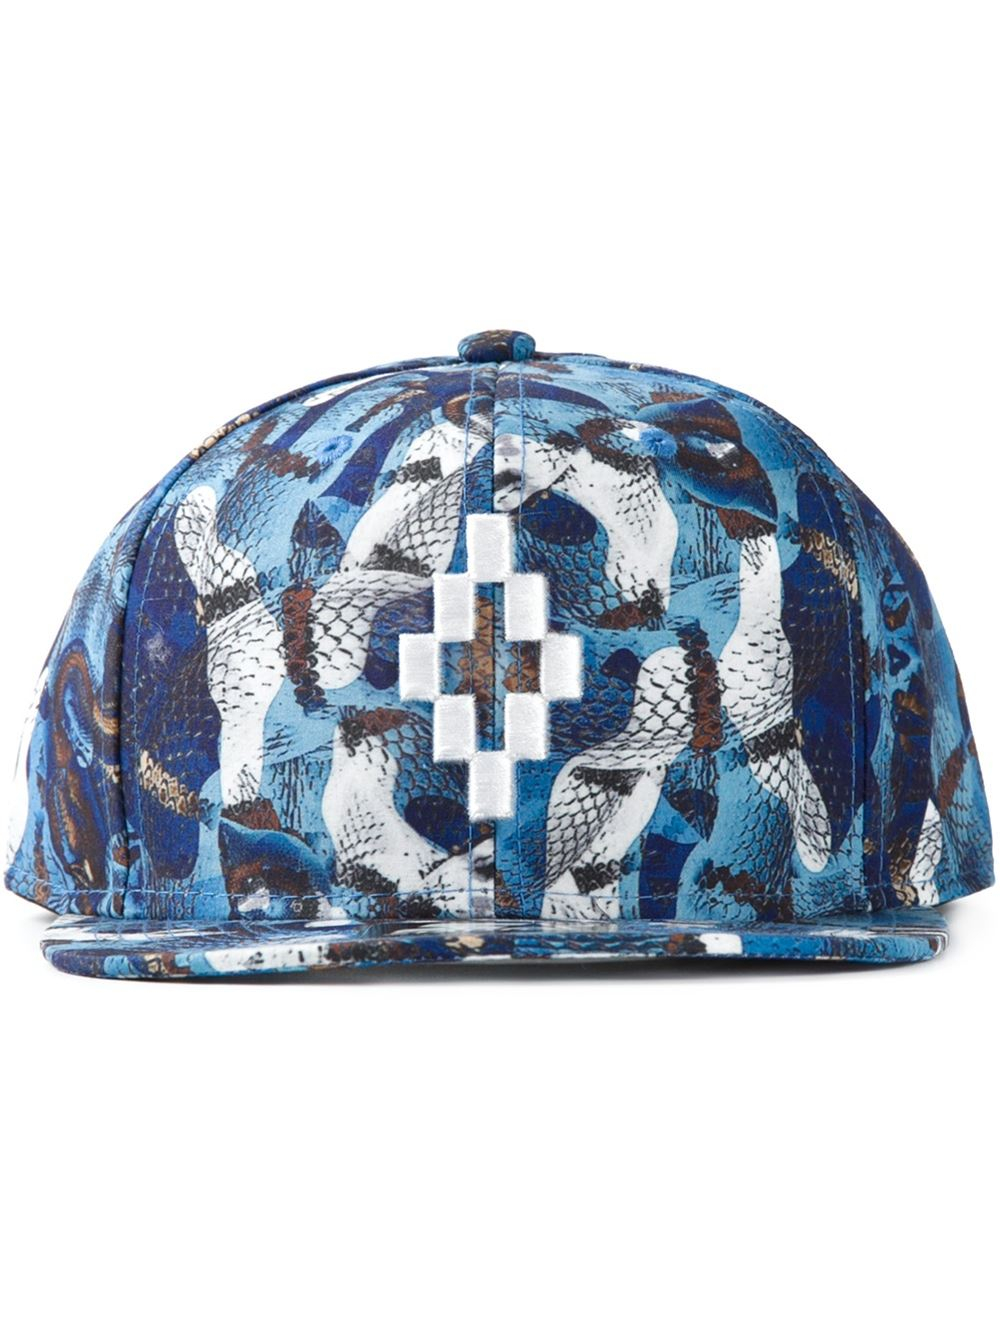 6ea5f788adc Marcelo Burlon Snake Print Cap in Blue for Men - Lyst